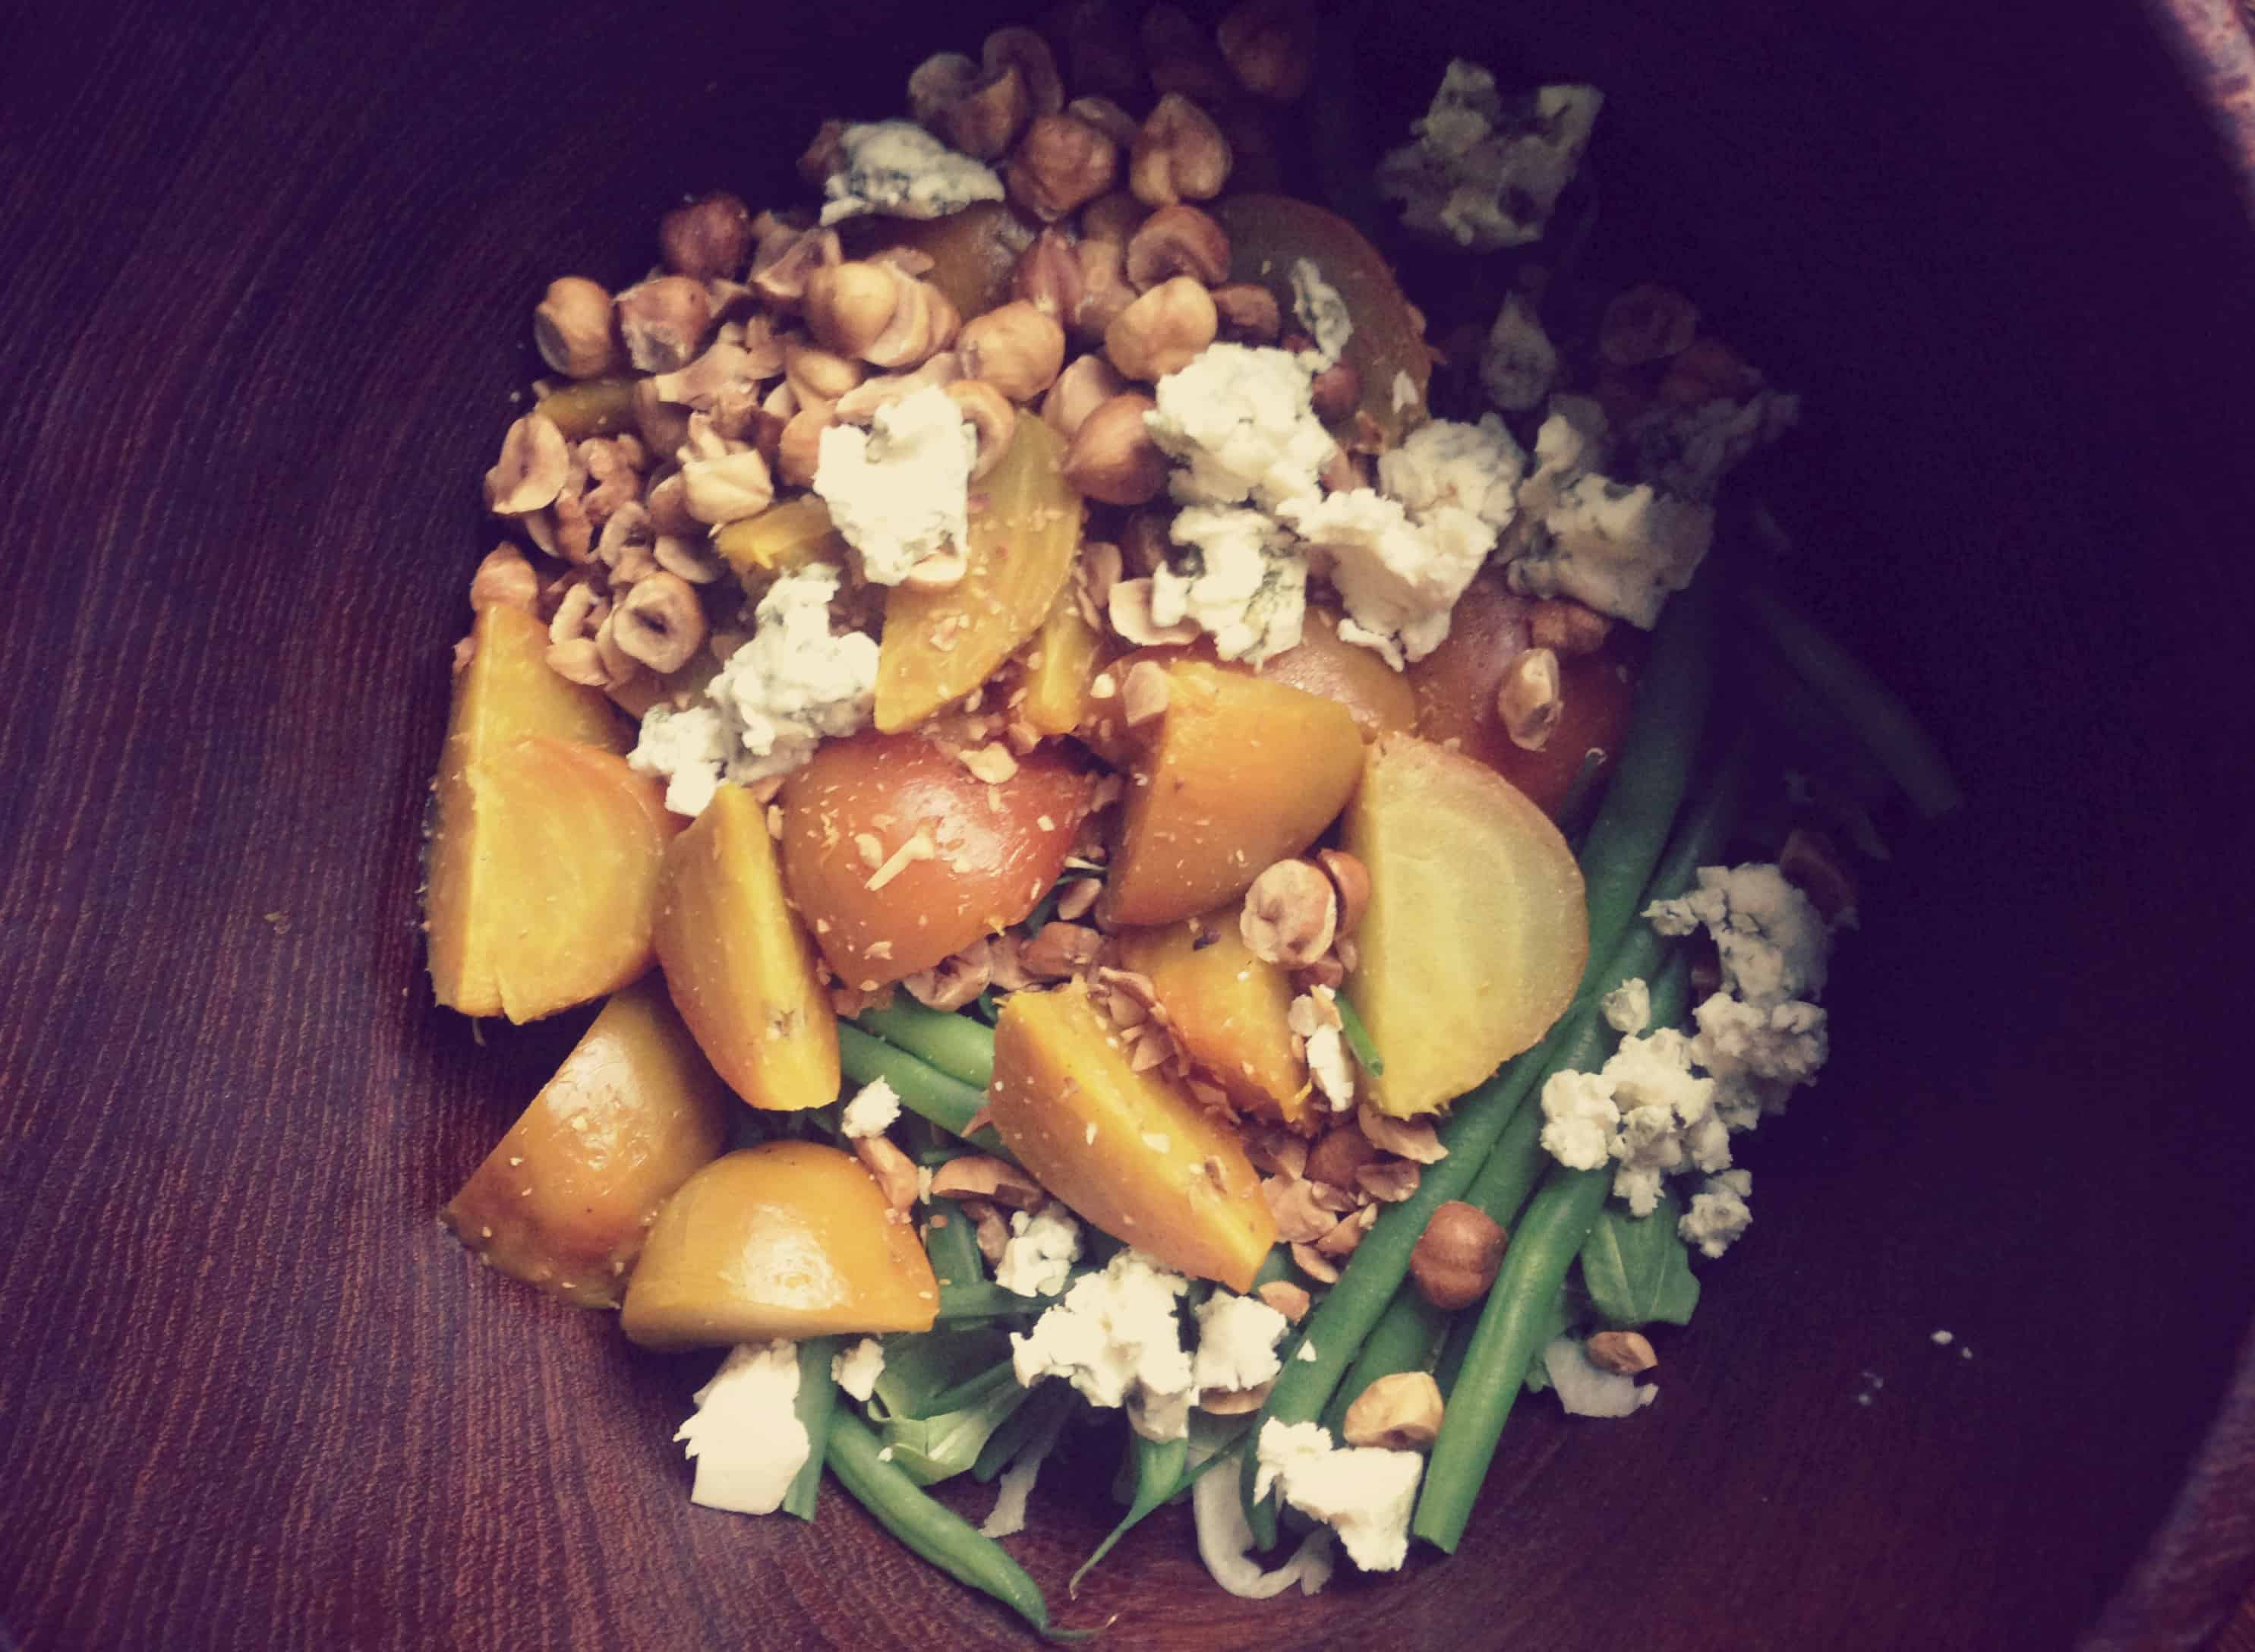 A salad of golden beets, blue cheese, green beans, and hazelnuts in a wood bowl.